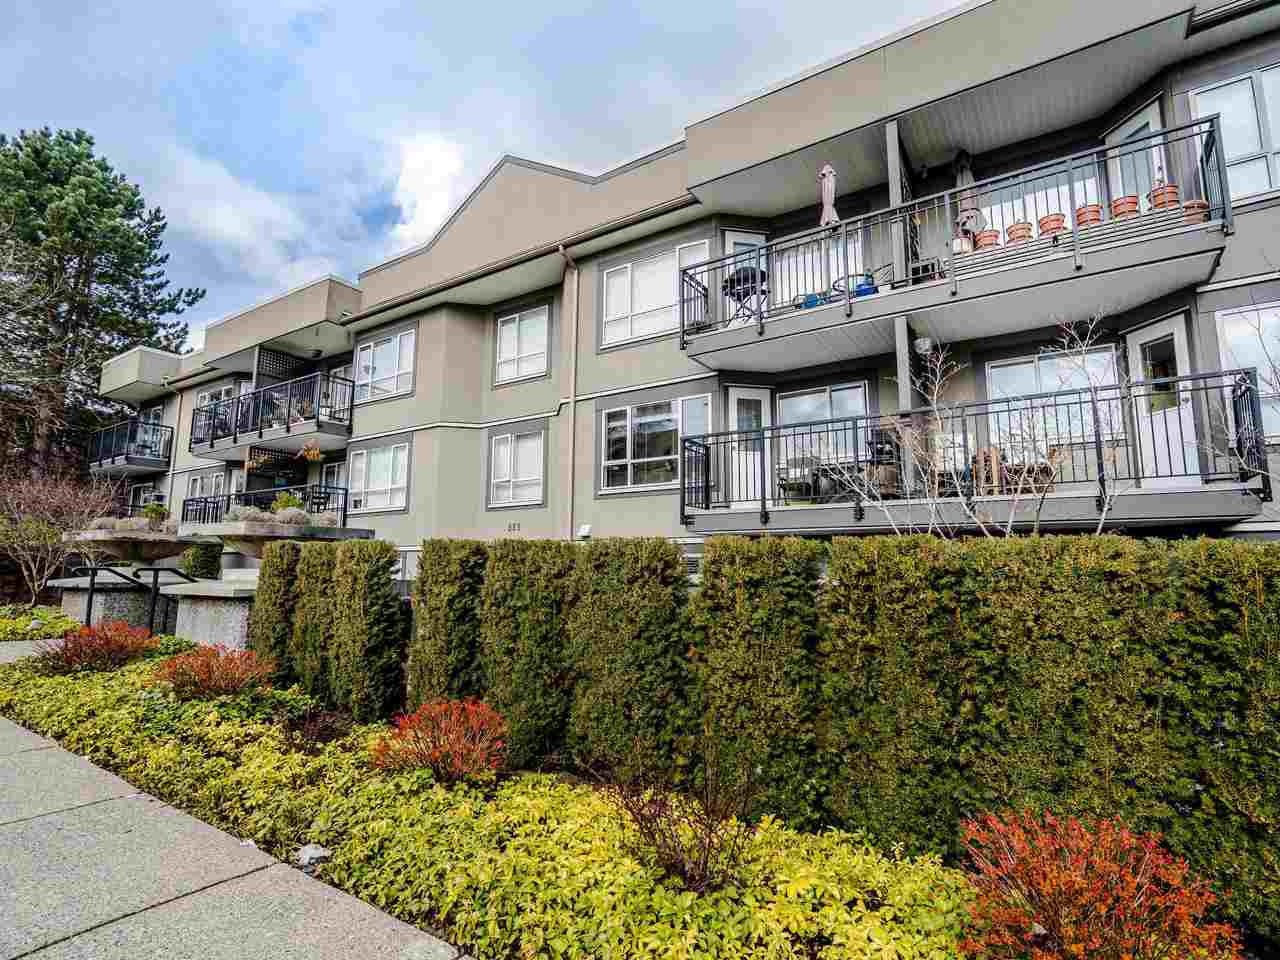 """Main Photo: 213 555 W 14TH Avenue in Vancouver: Fairview VW Condo for sale in """"Cambridge Place"""" (Vancouver West)  : MLS®# R2448193"""